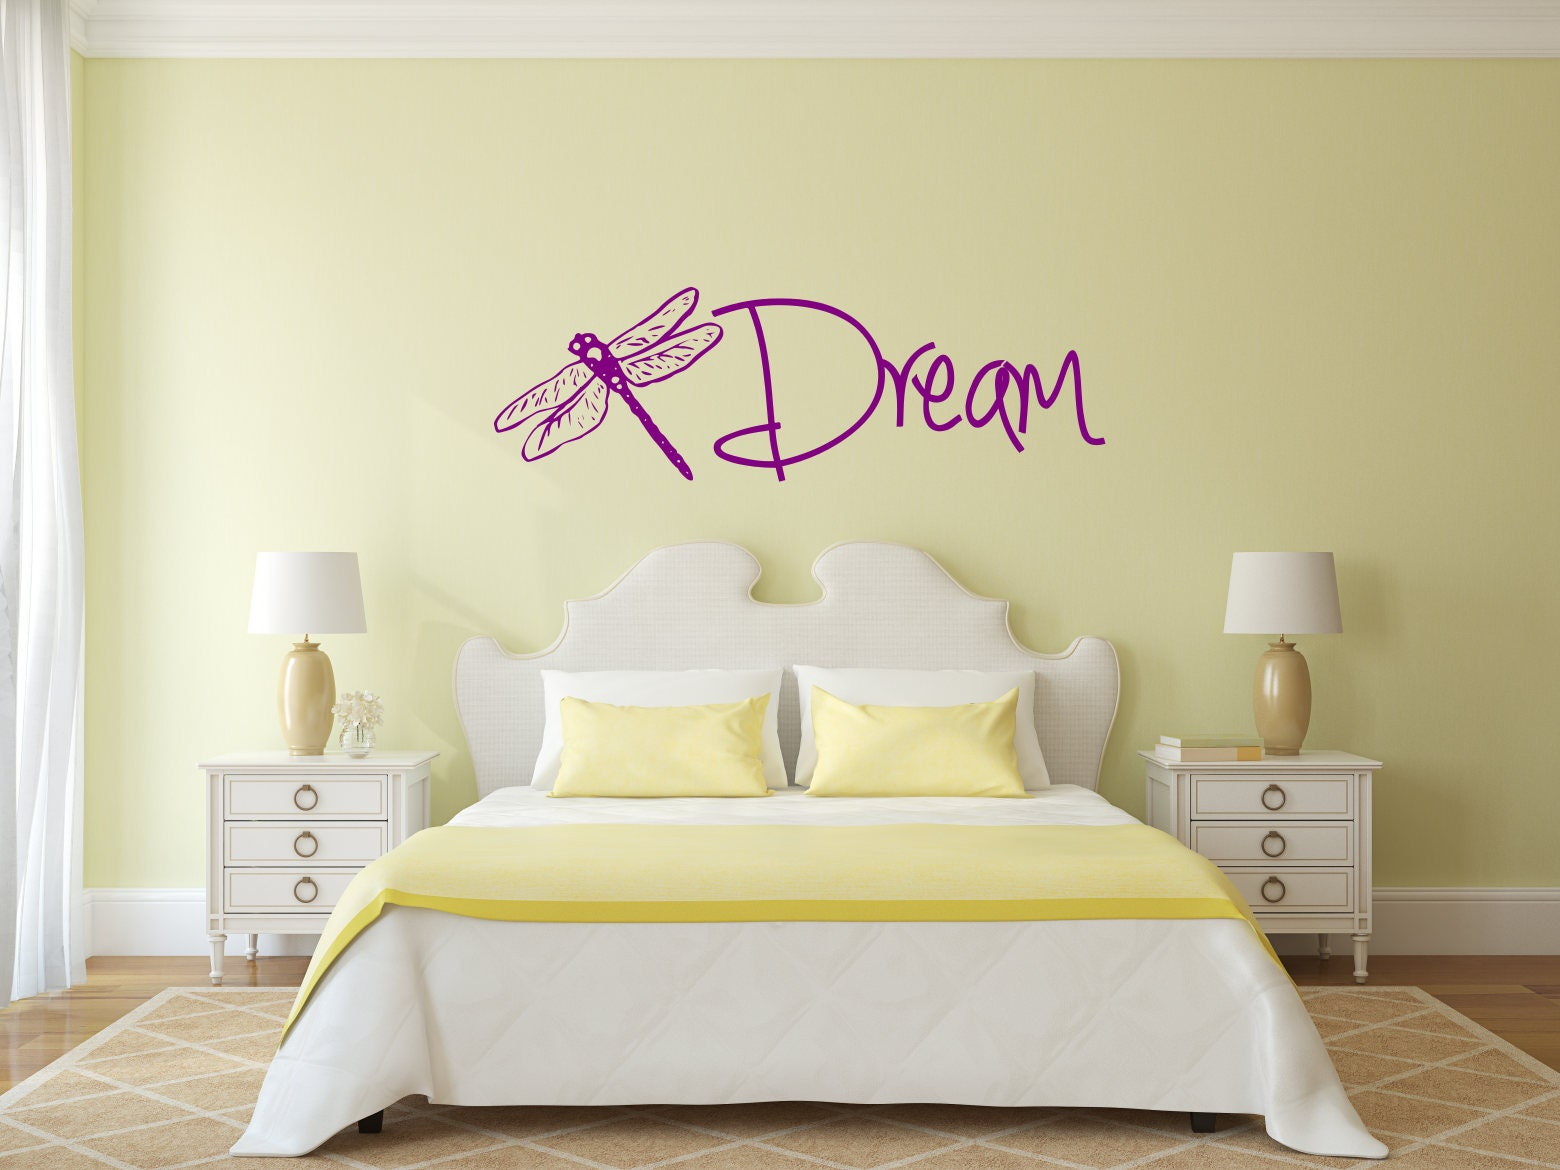 Dragonfly dream decal, dragonfly decal, dream decal, dragonfly wall ...